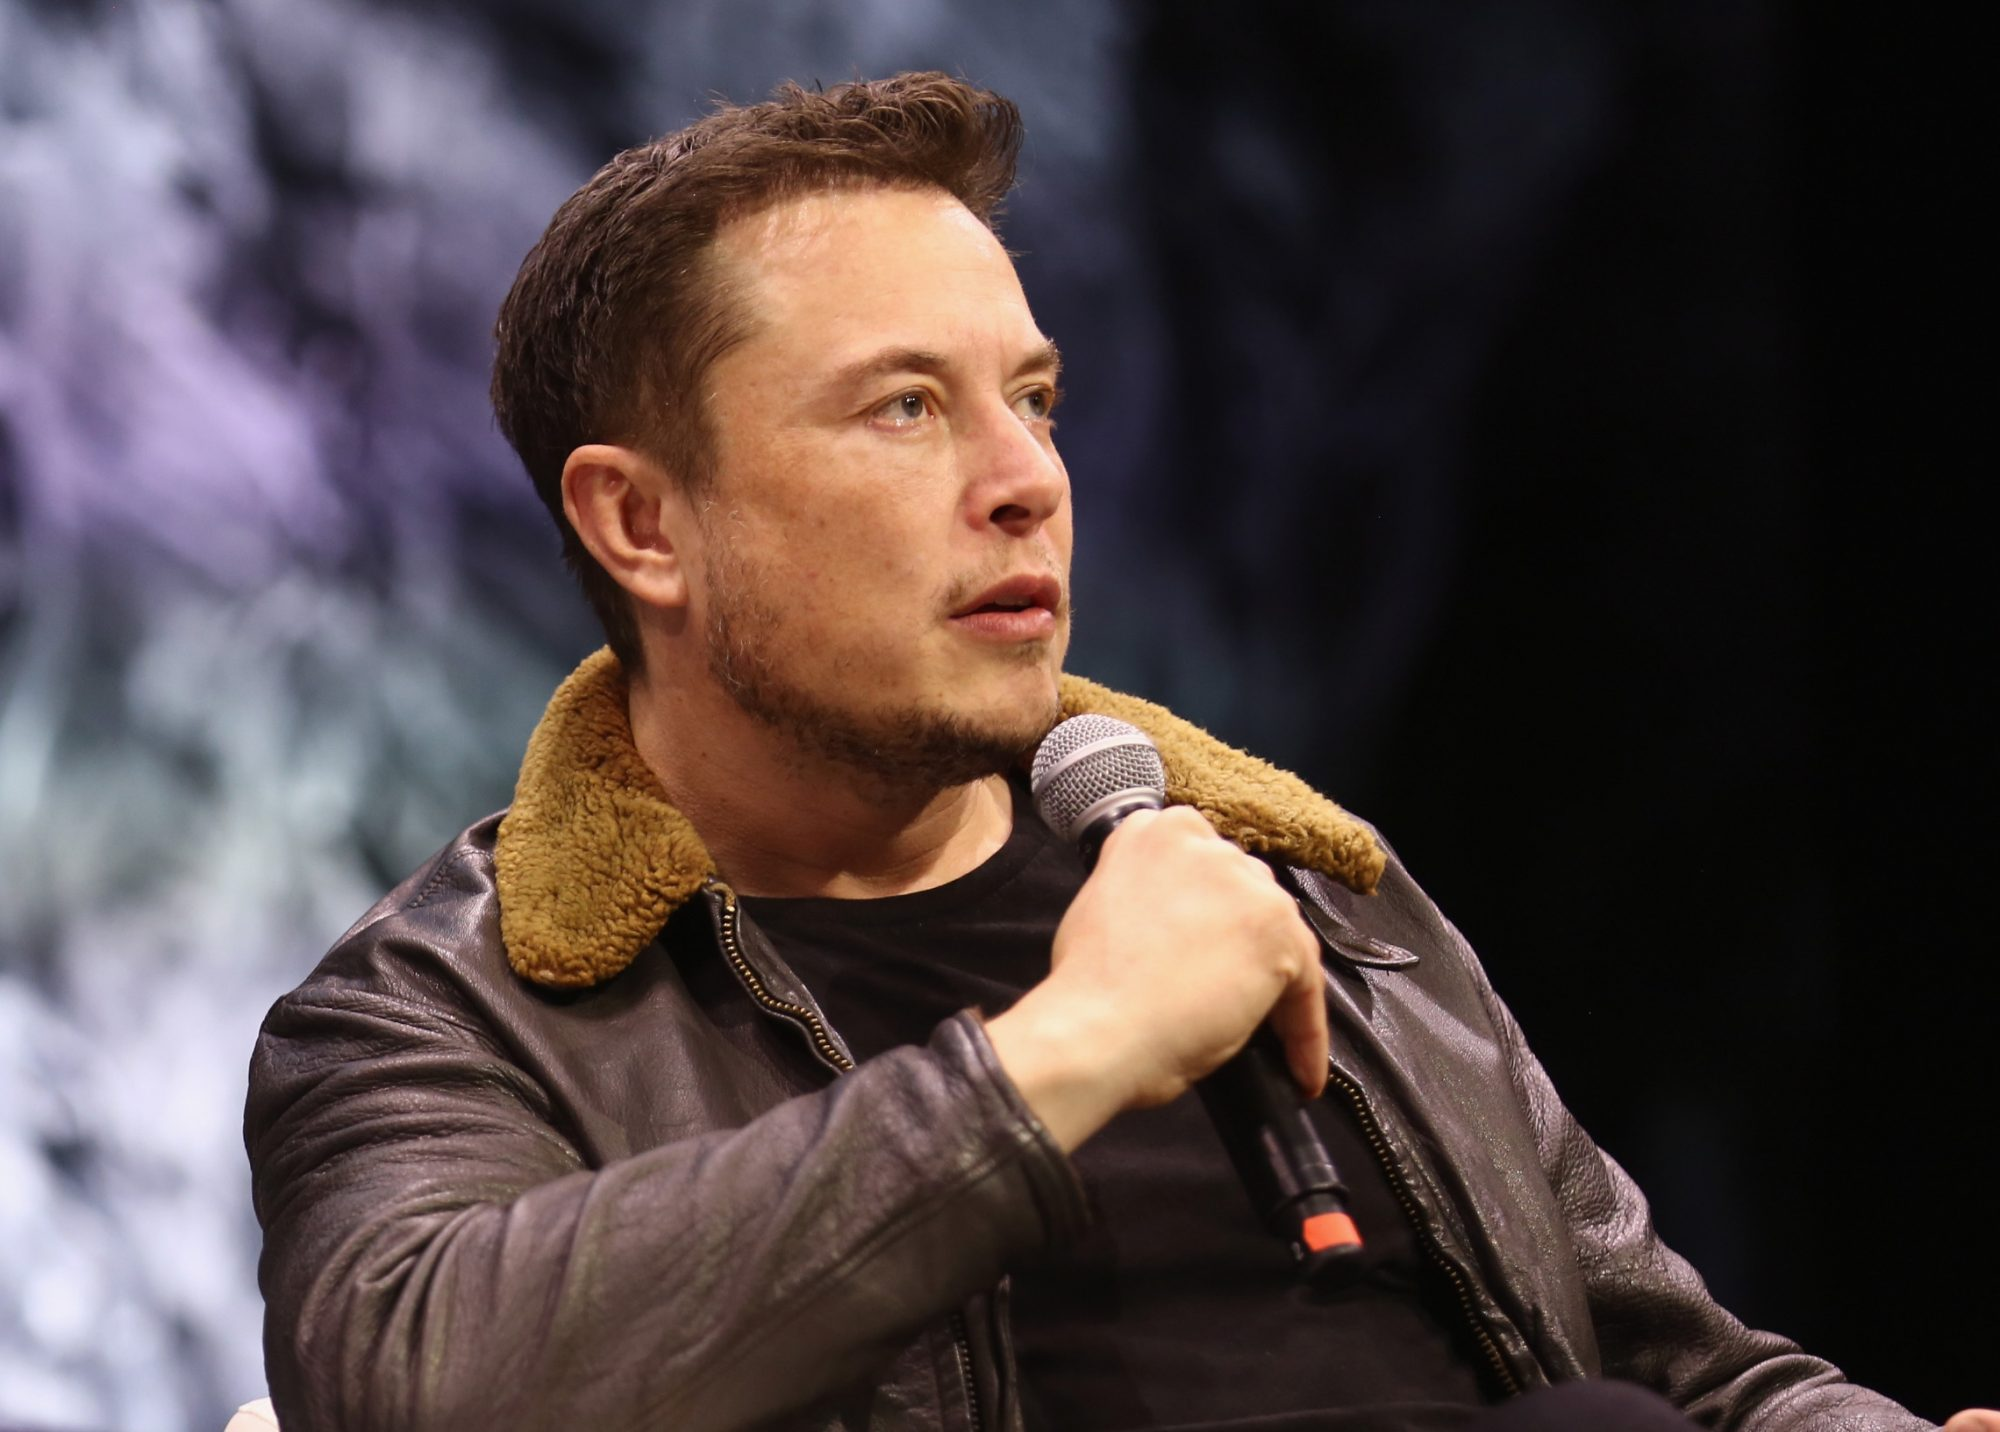 Tesla and SpaceX CEO Elon Musk speaks onstage at the South by Southwest festival.